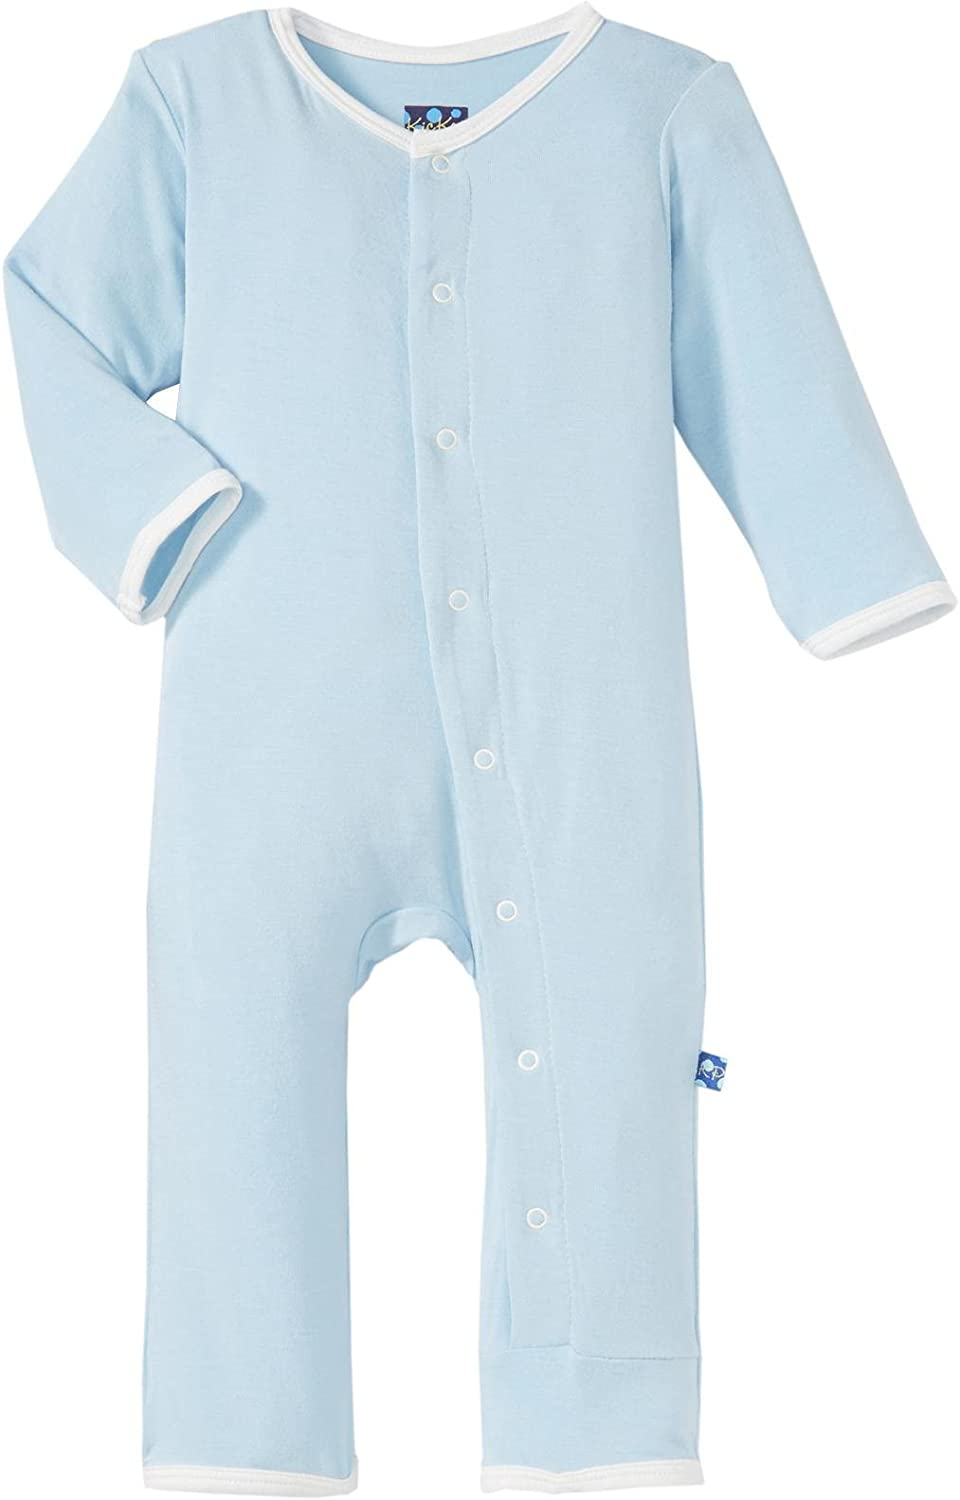 KicKee Pants Baby Boys' Holiday Fitted Applique Coverall Prd